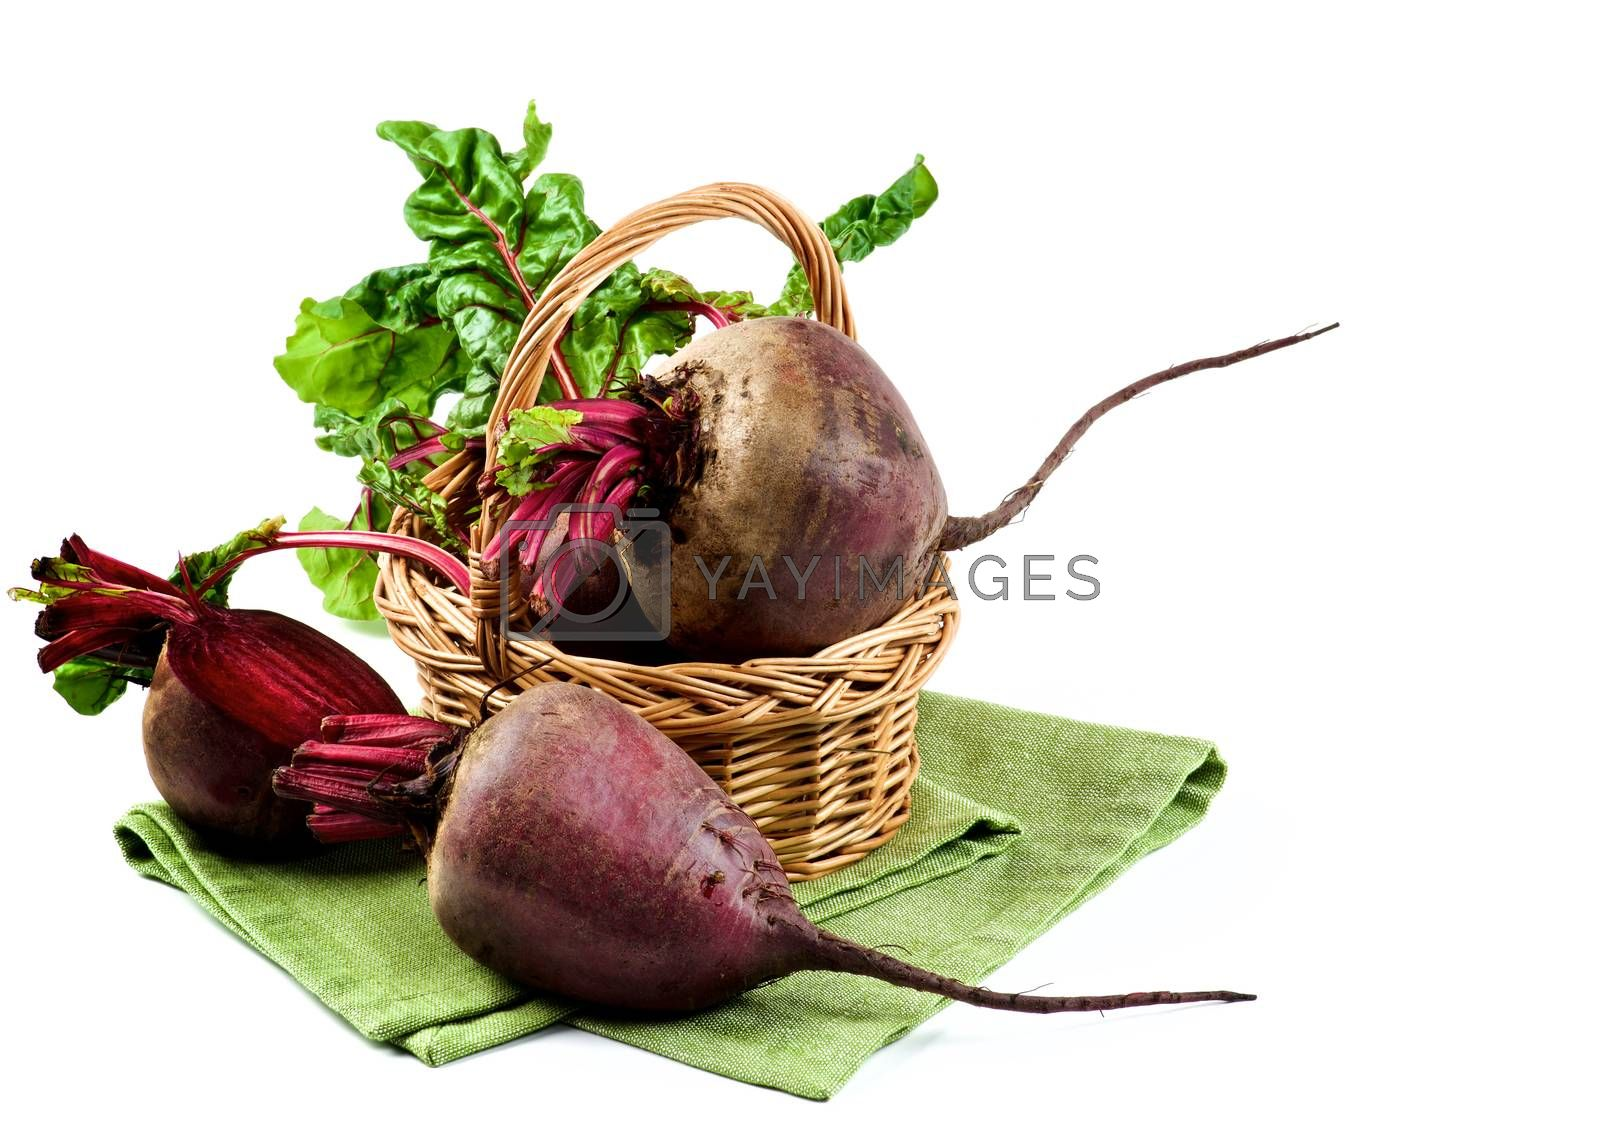 Arrangement of Full Body and Half of Fresh Raw Organic Beet Roots with Green Beet Tops in Wicker Basket on Napkin isolated on White background